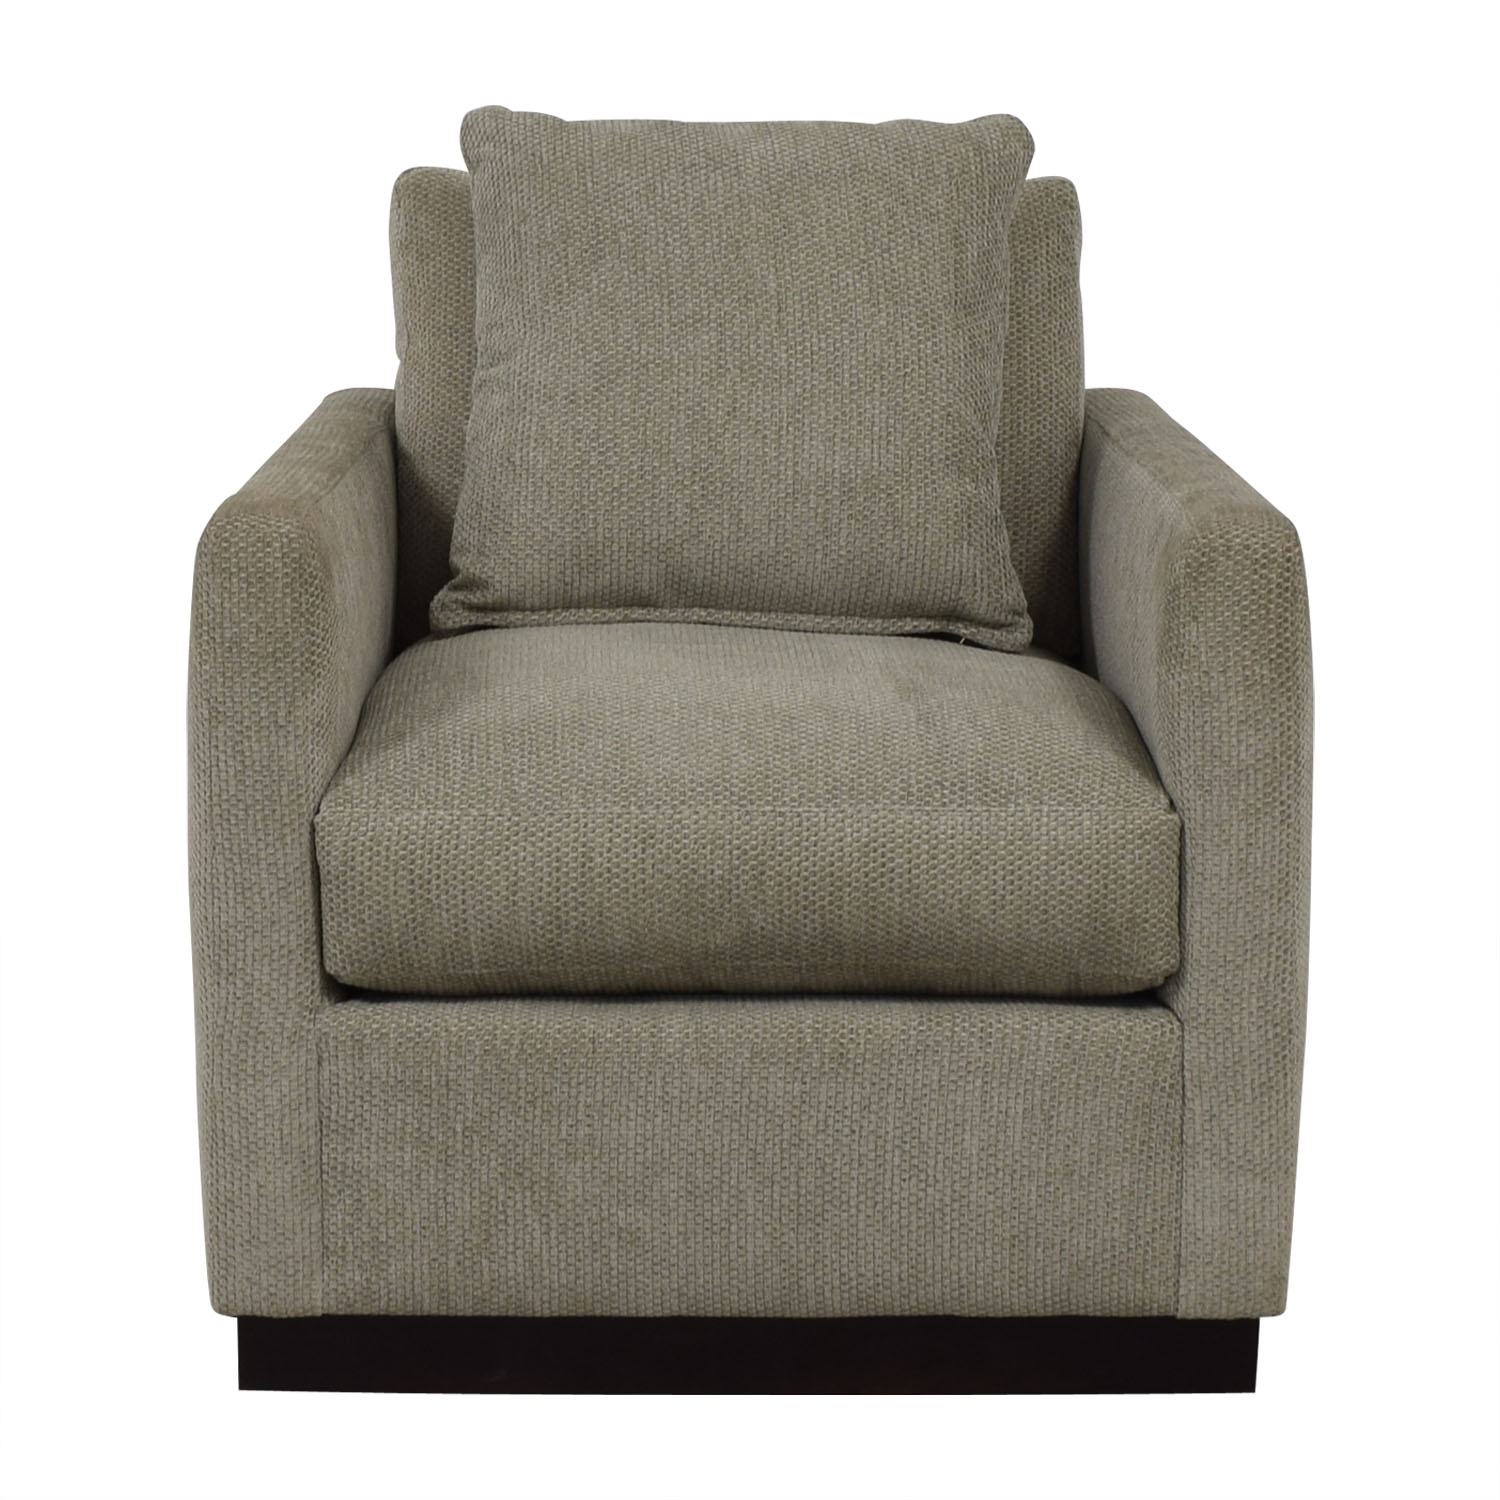 Robin Bruce Allie Swivel Accent Chair / Accent Chairs